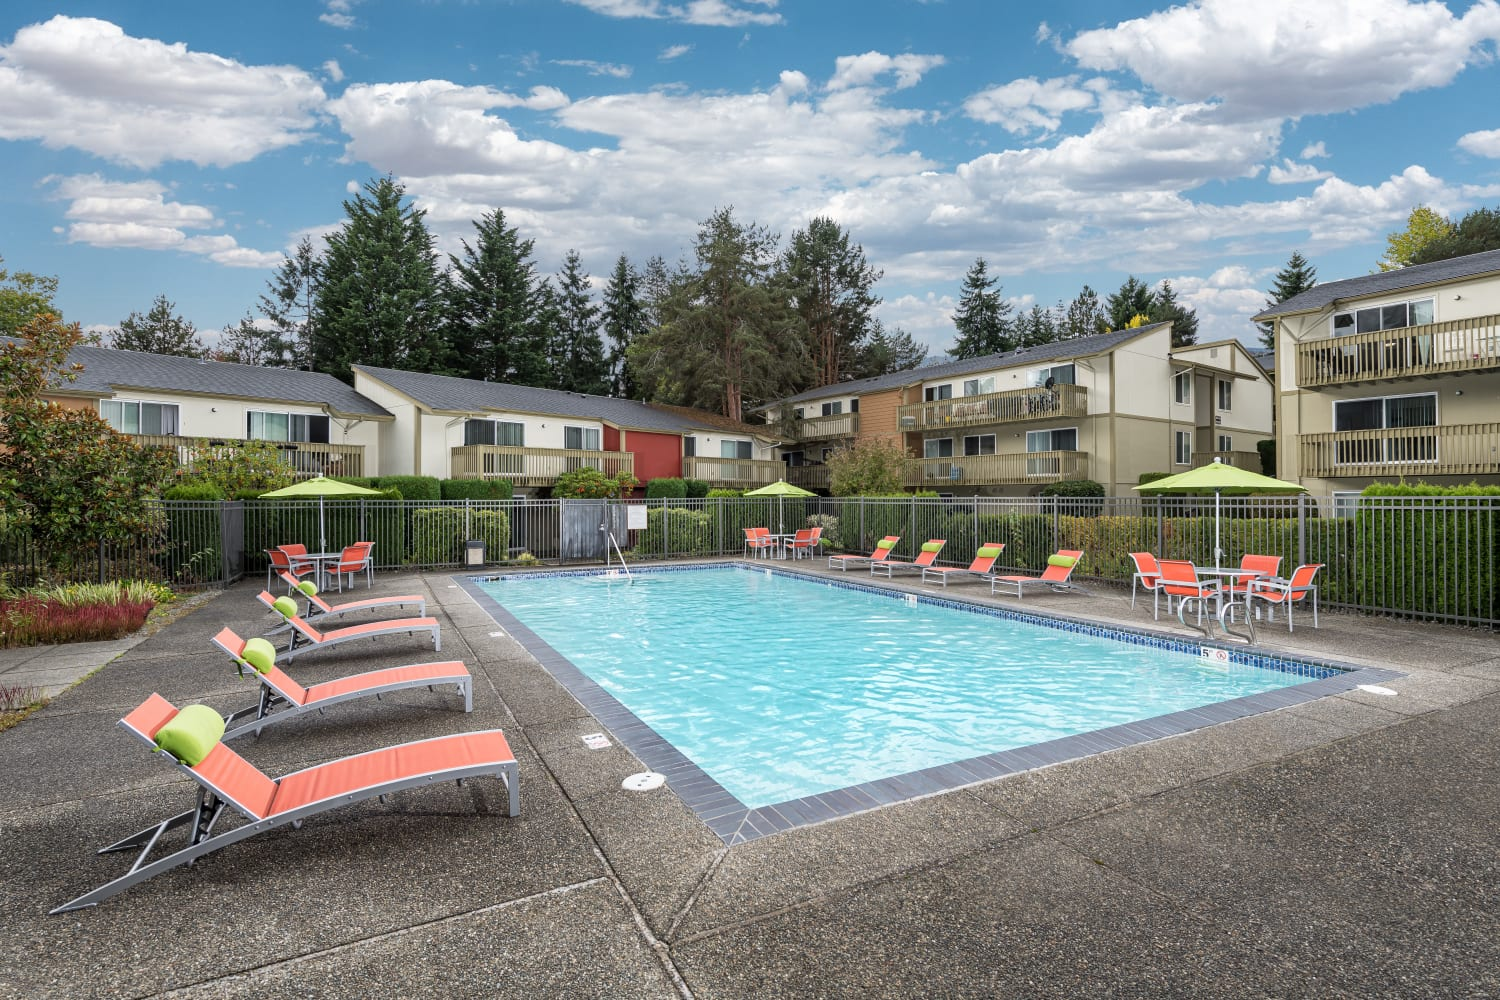 Edgewood Park Apartments offers a swimming pool in Bellevue, Washington